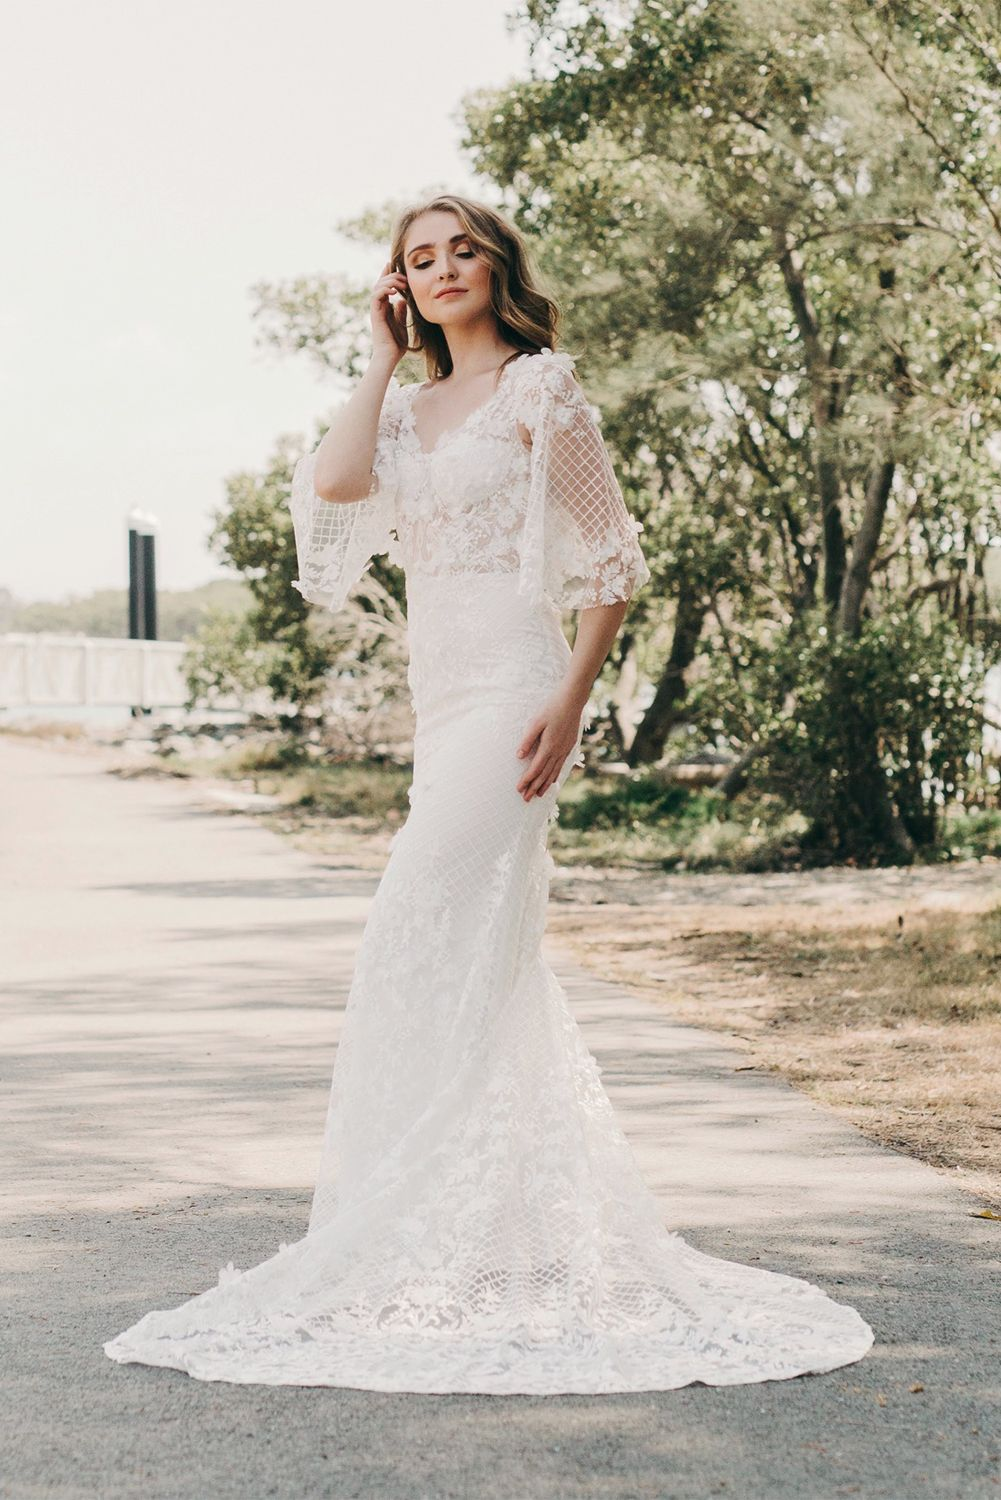 Lace wedding gown with flowing sleeves mia by goddess by nature